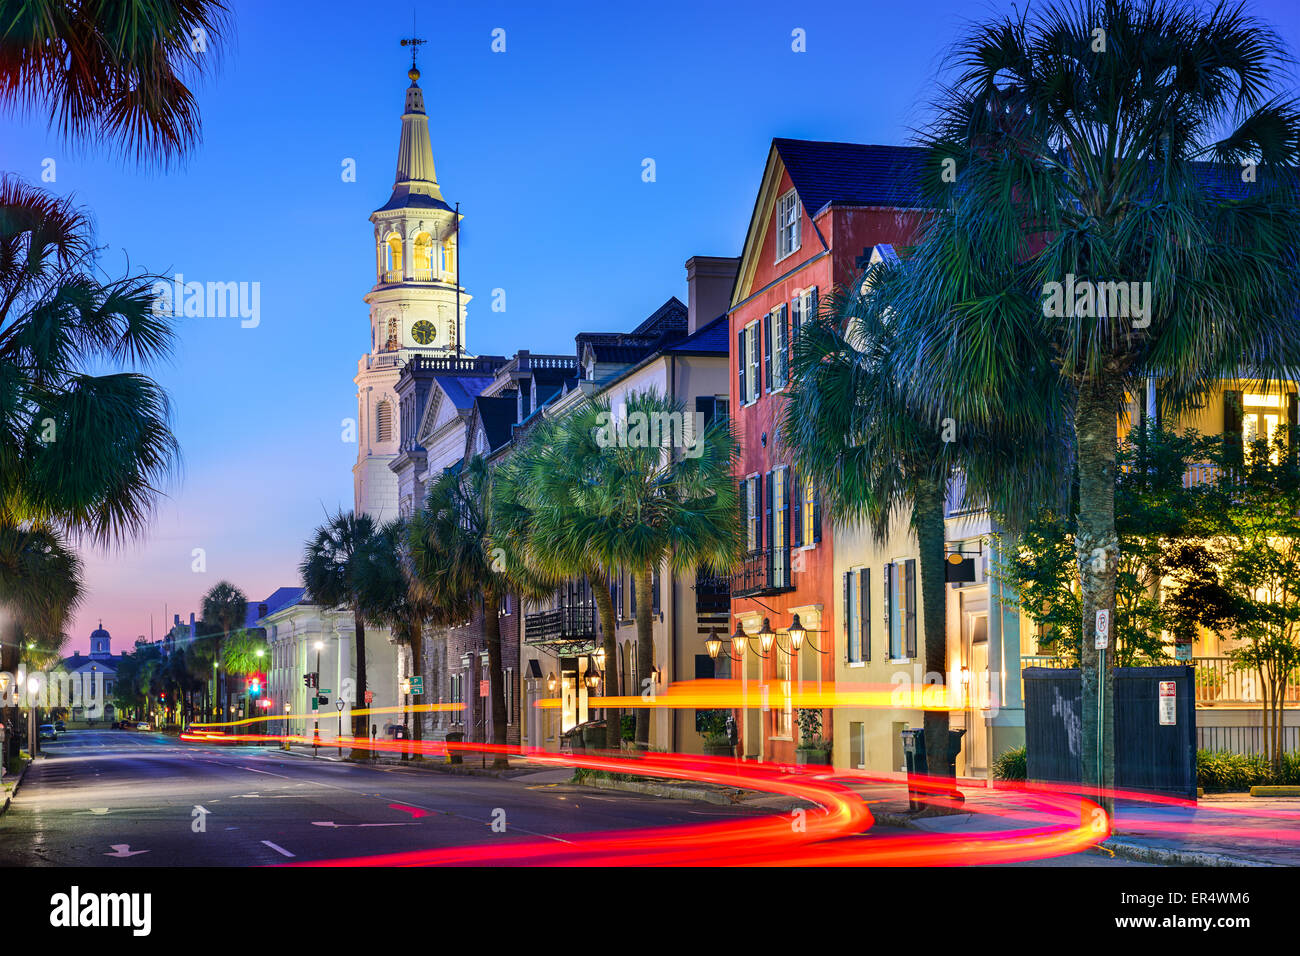 Charleston, South Carolina, USA cityscape at  St. Michael's Episcopal Church. - Stock Image